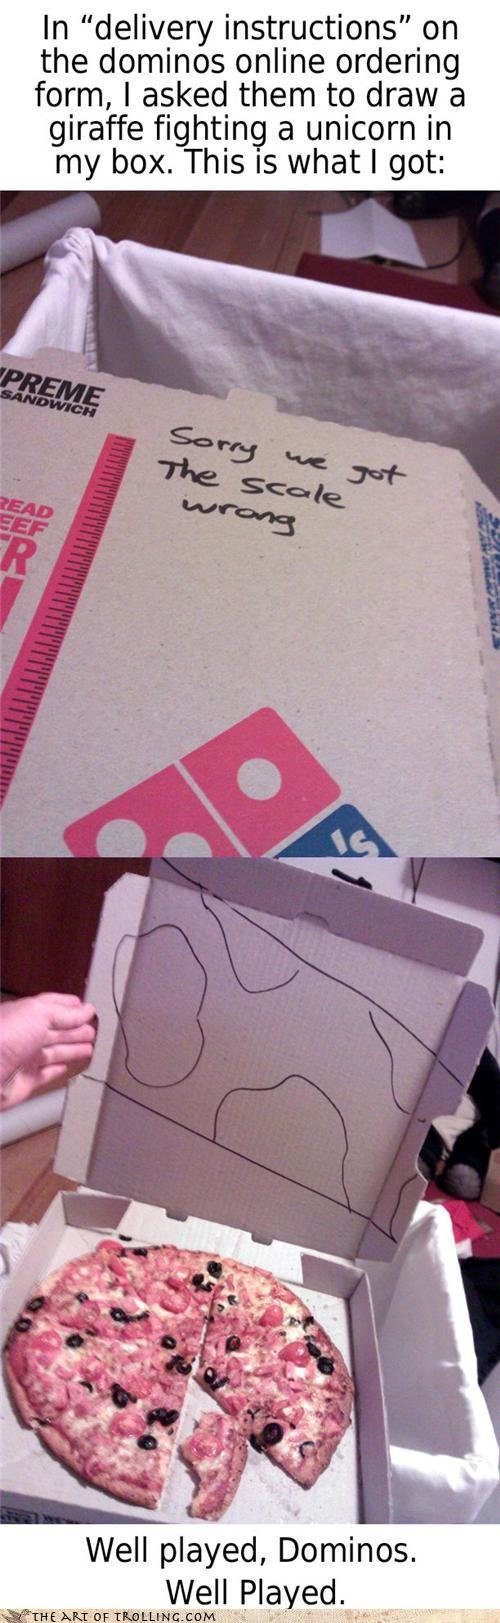 chatroulette trolling dominos